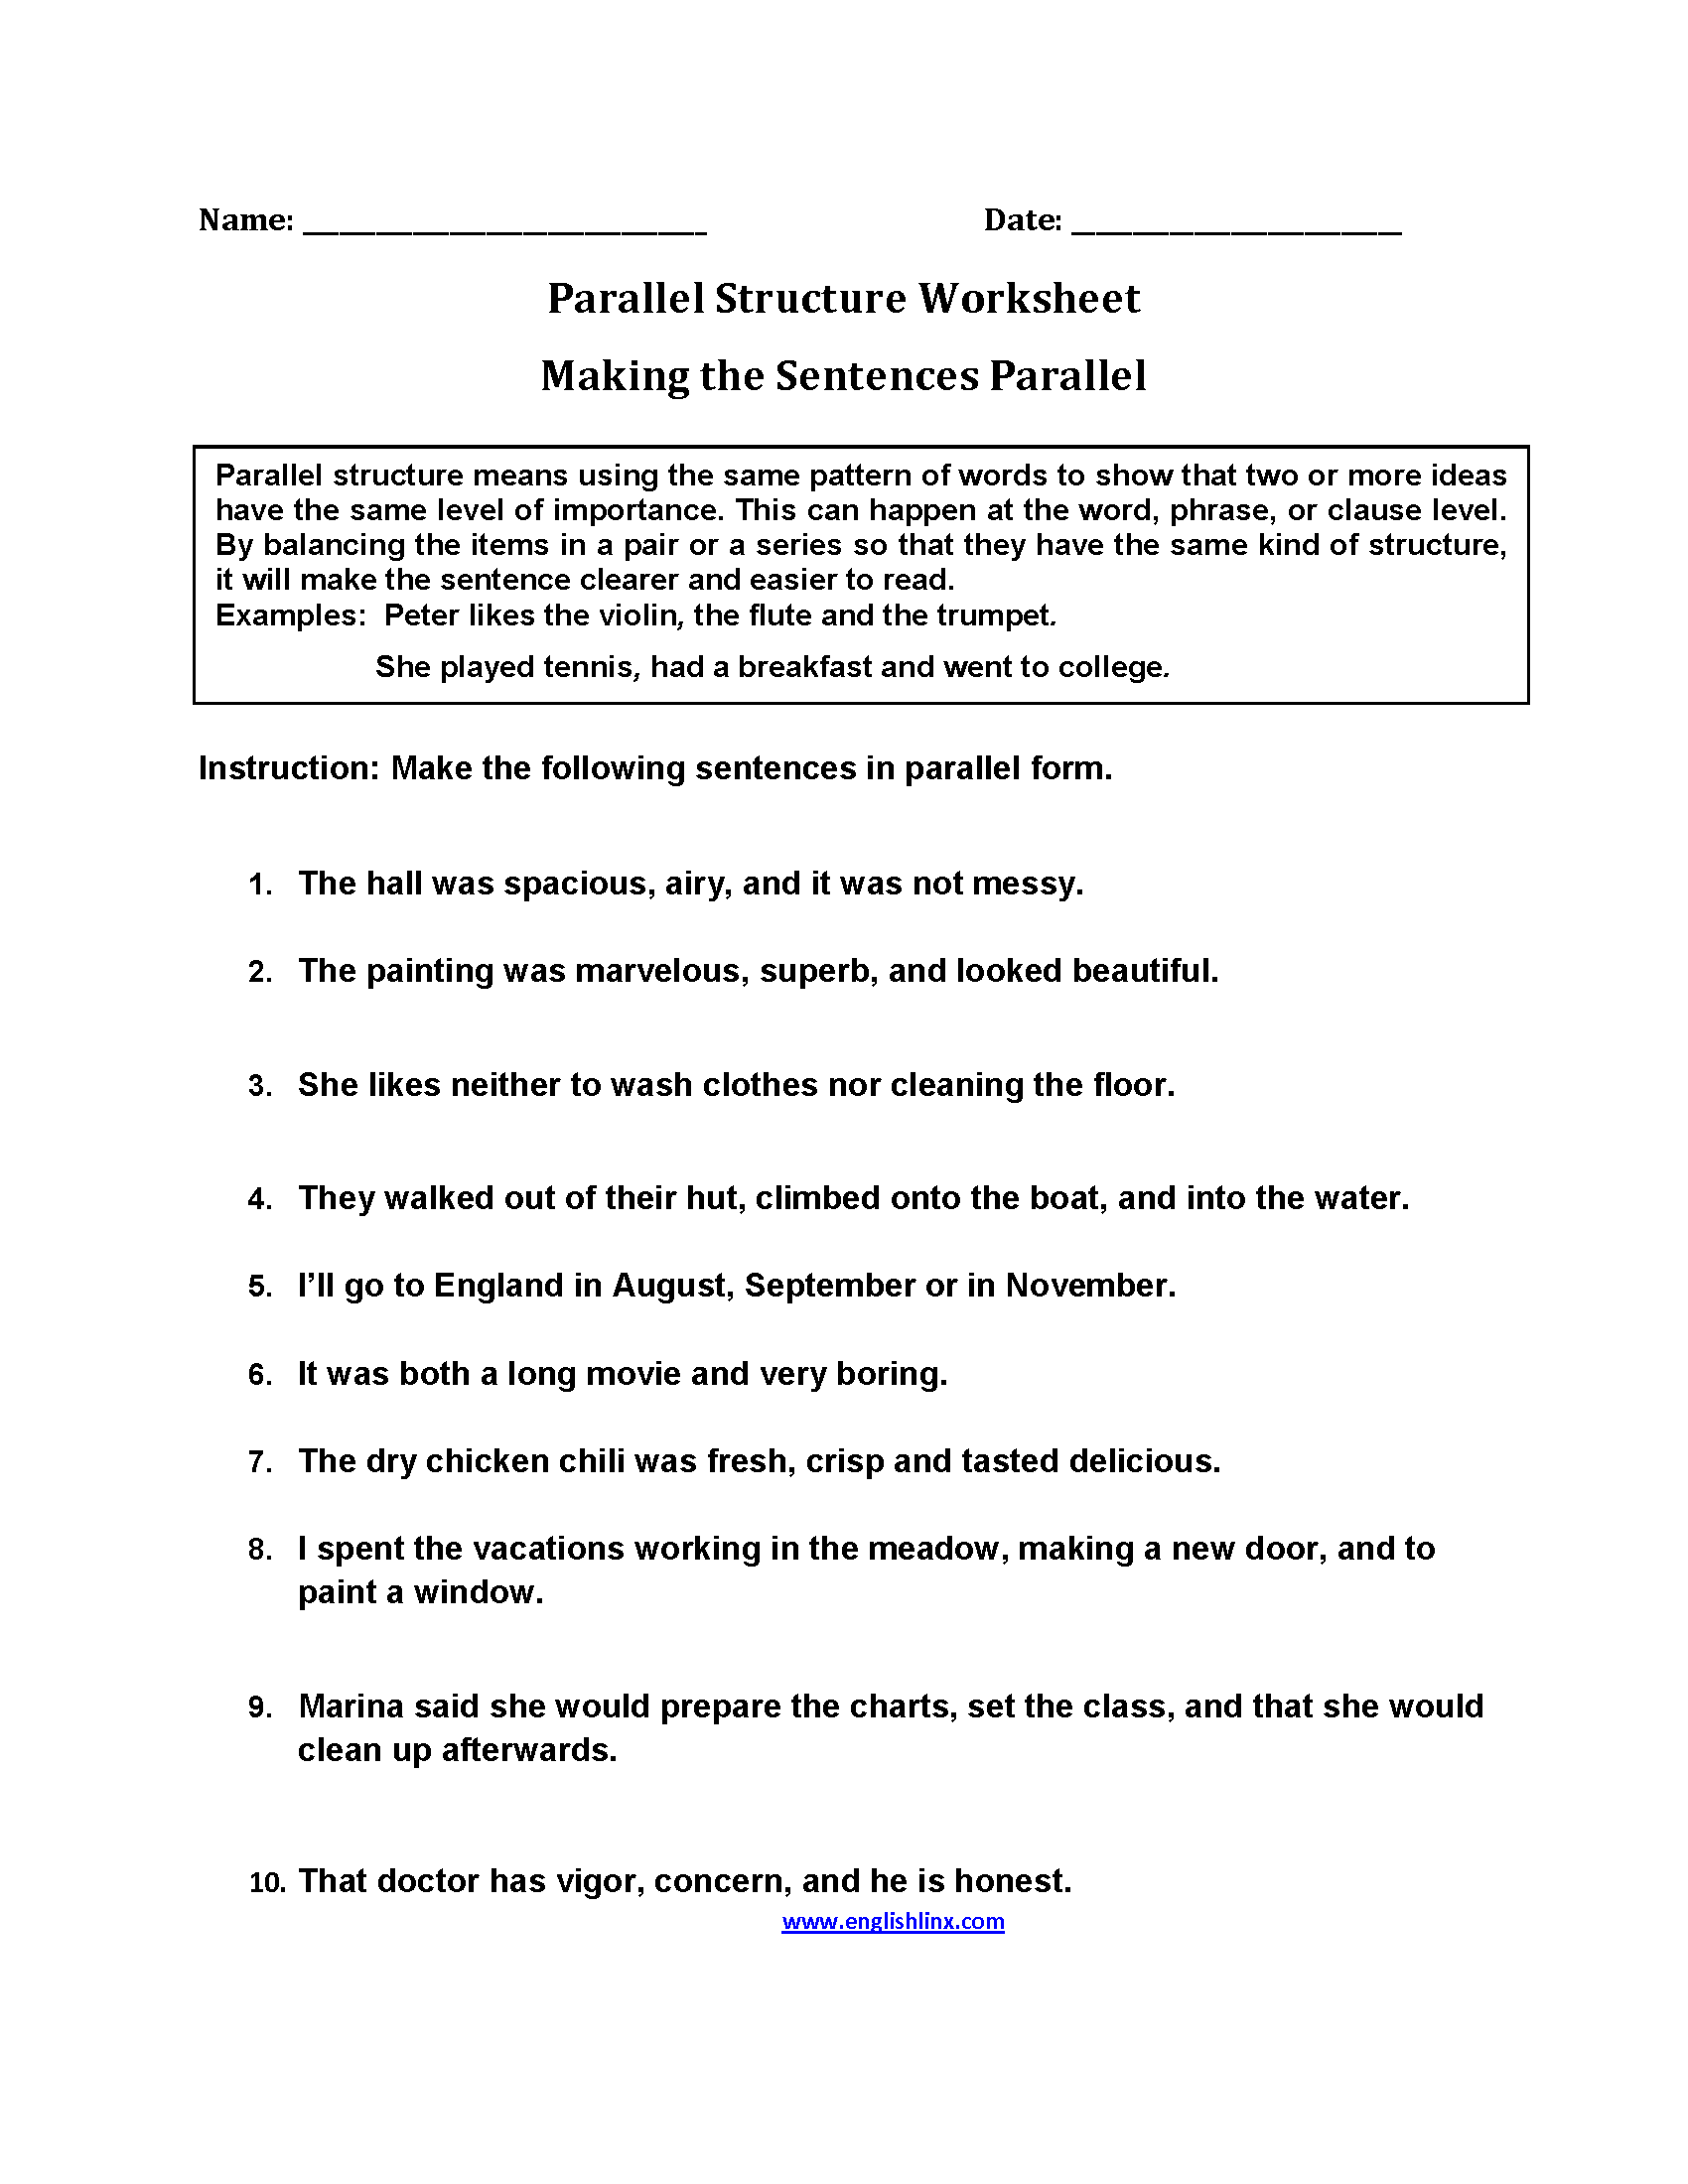 Parallel Structure Worksheets – Sentence Structure Worksheets